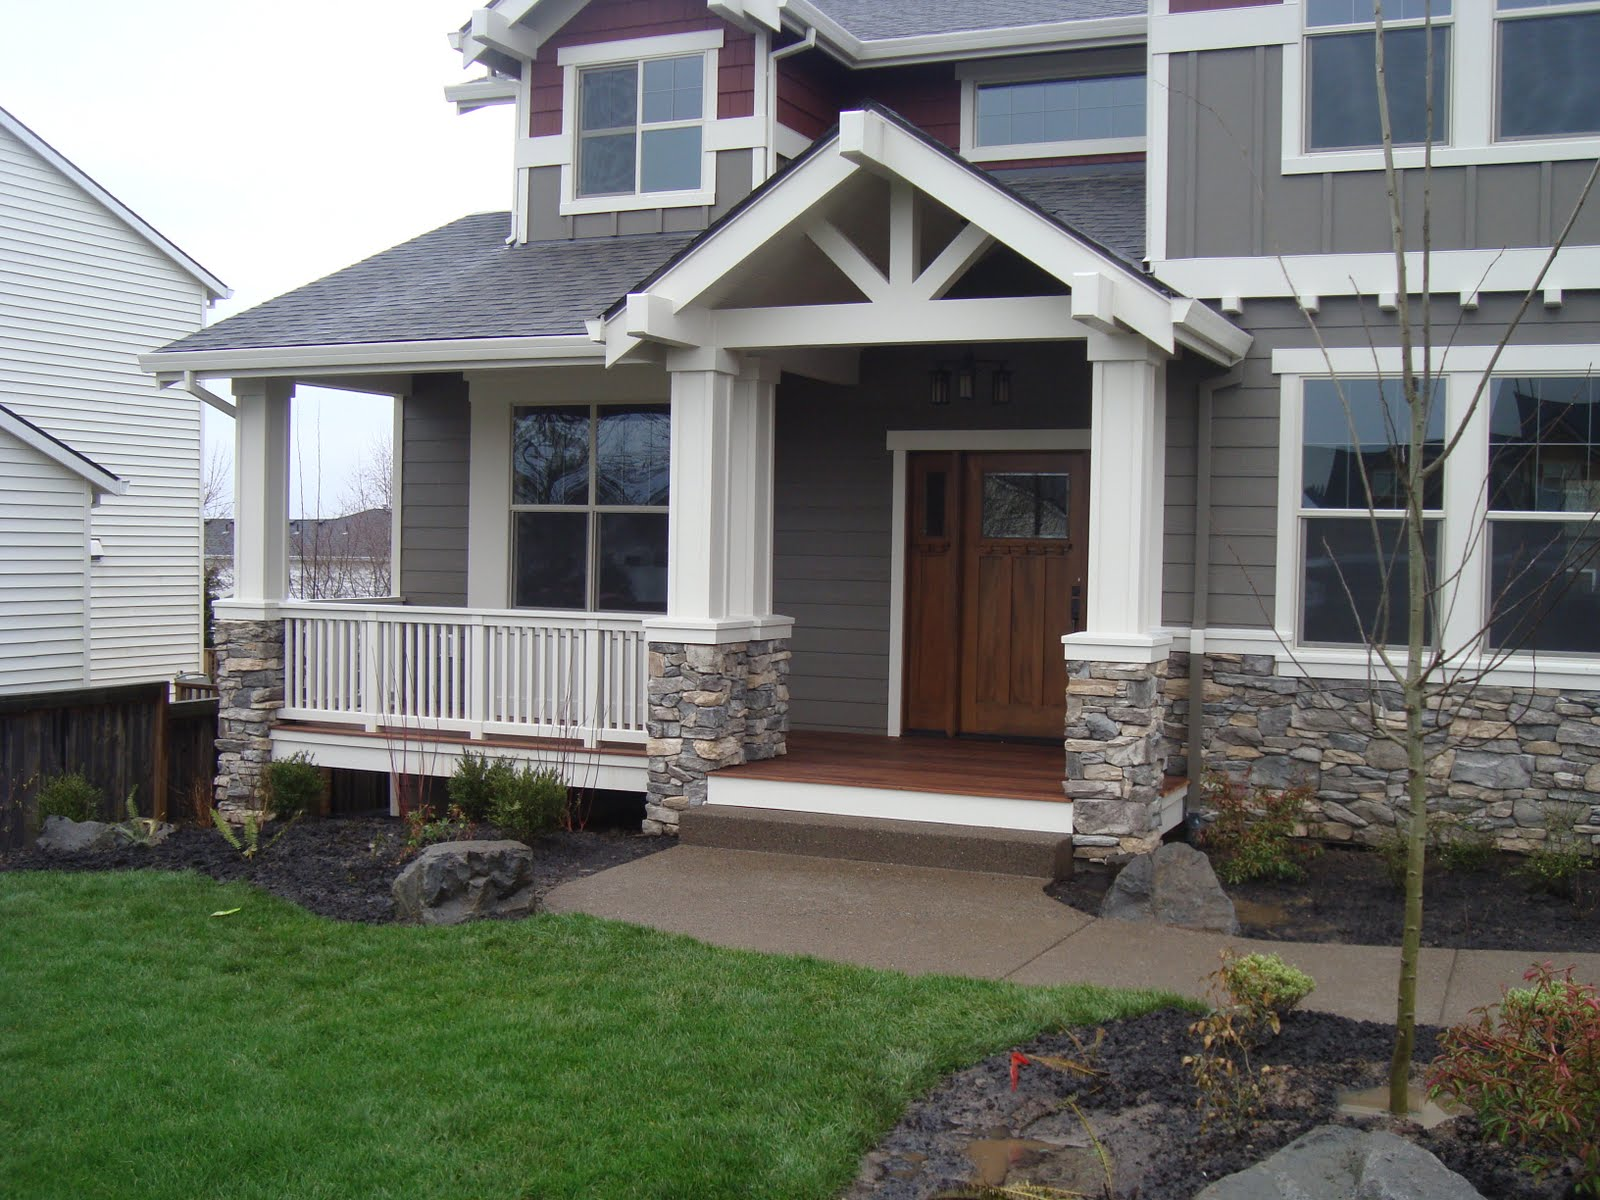 Halgren Construction Exterior Stone Veneer And Deck